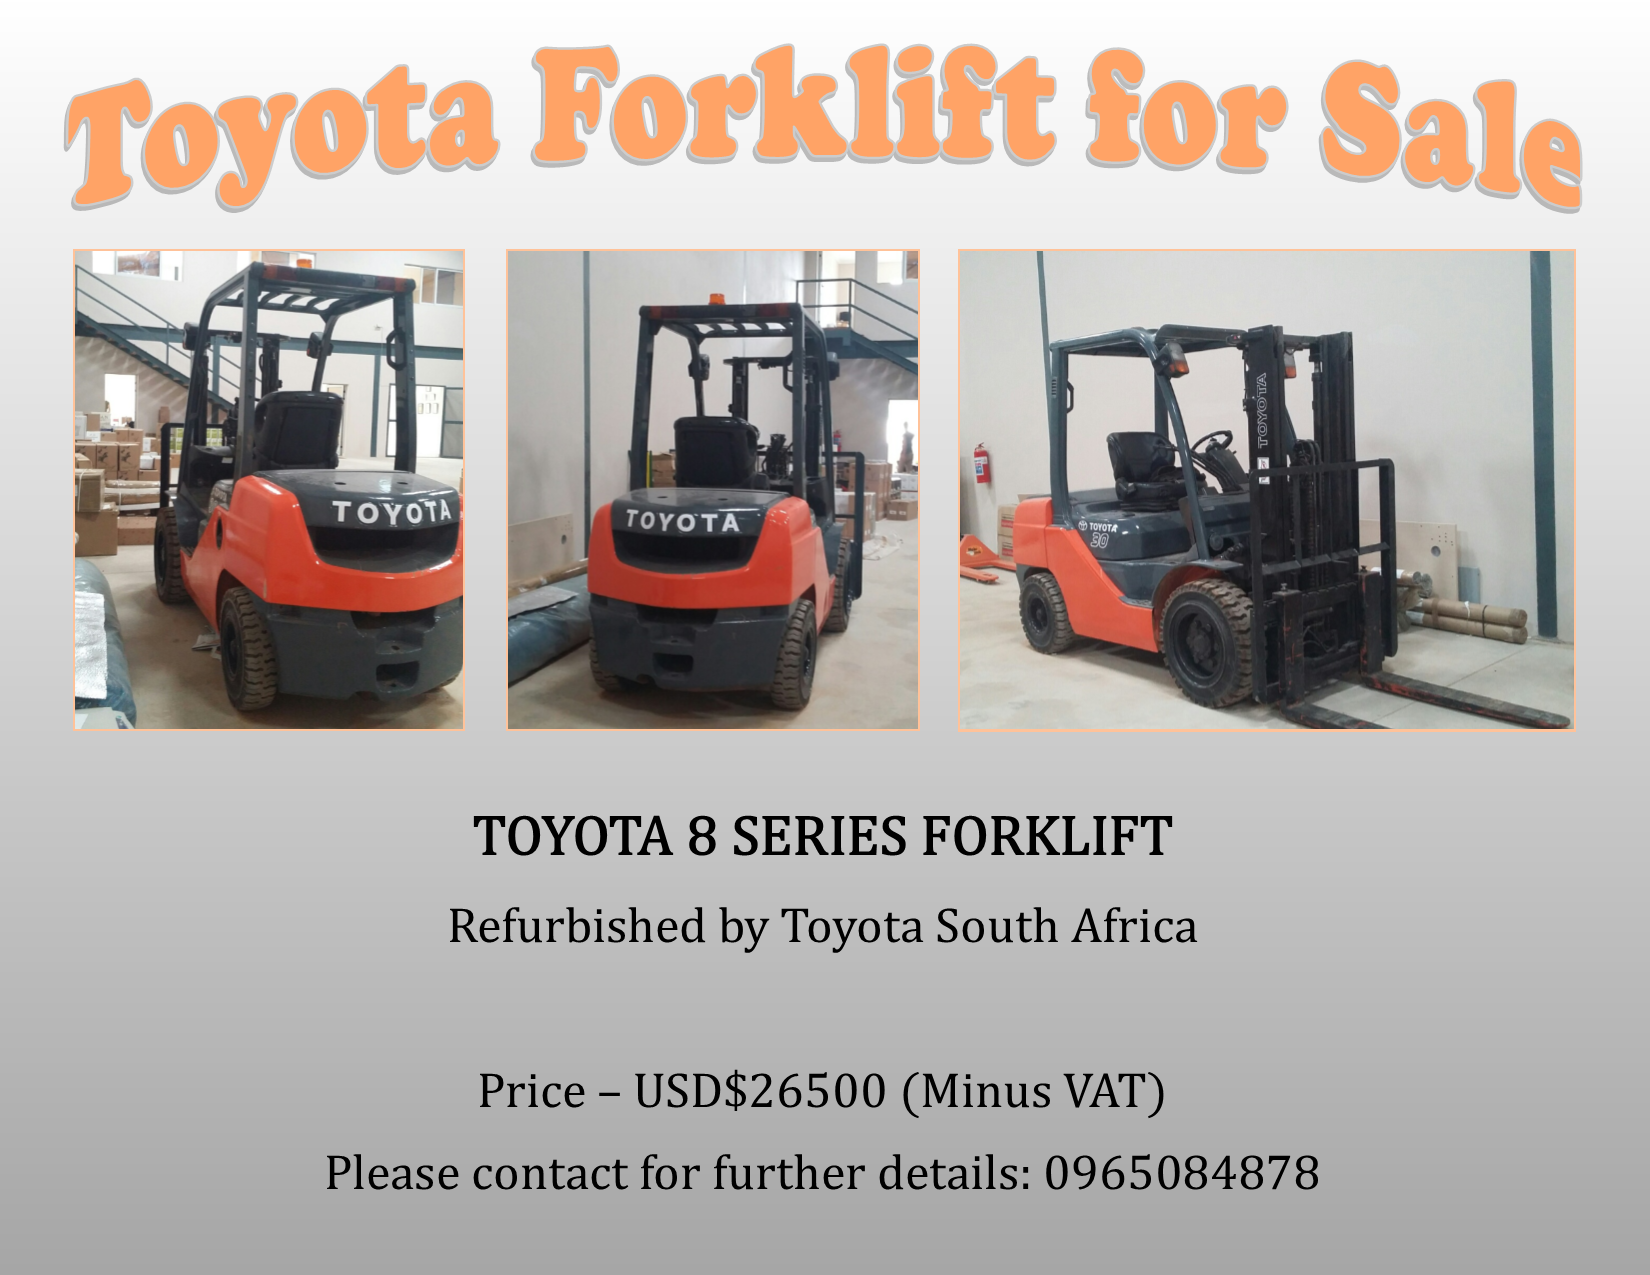 10 02 2017 - TOYOTA FORKLIFT FOR SALE » Ad-dicts Ads! Zambia